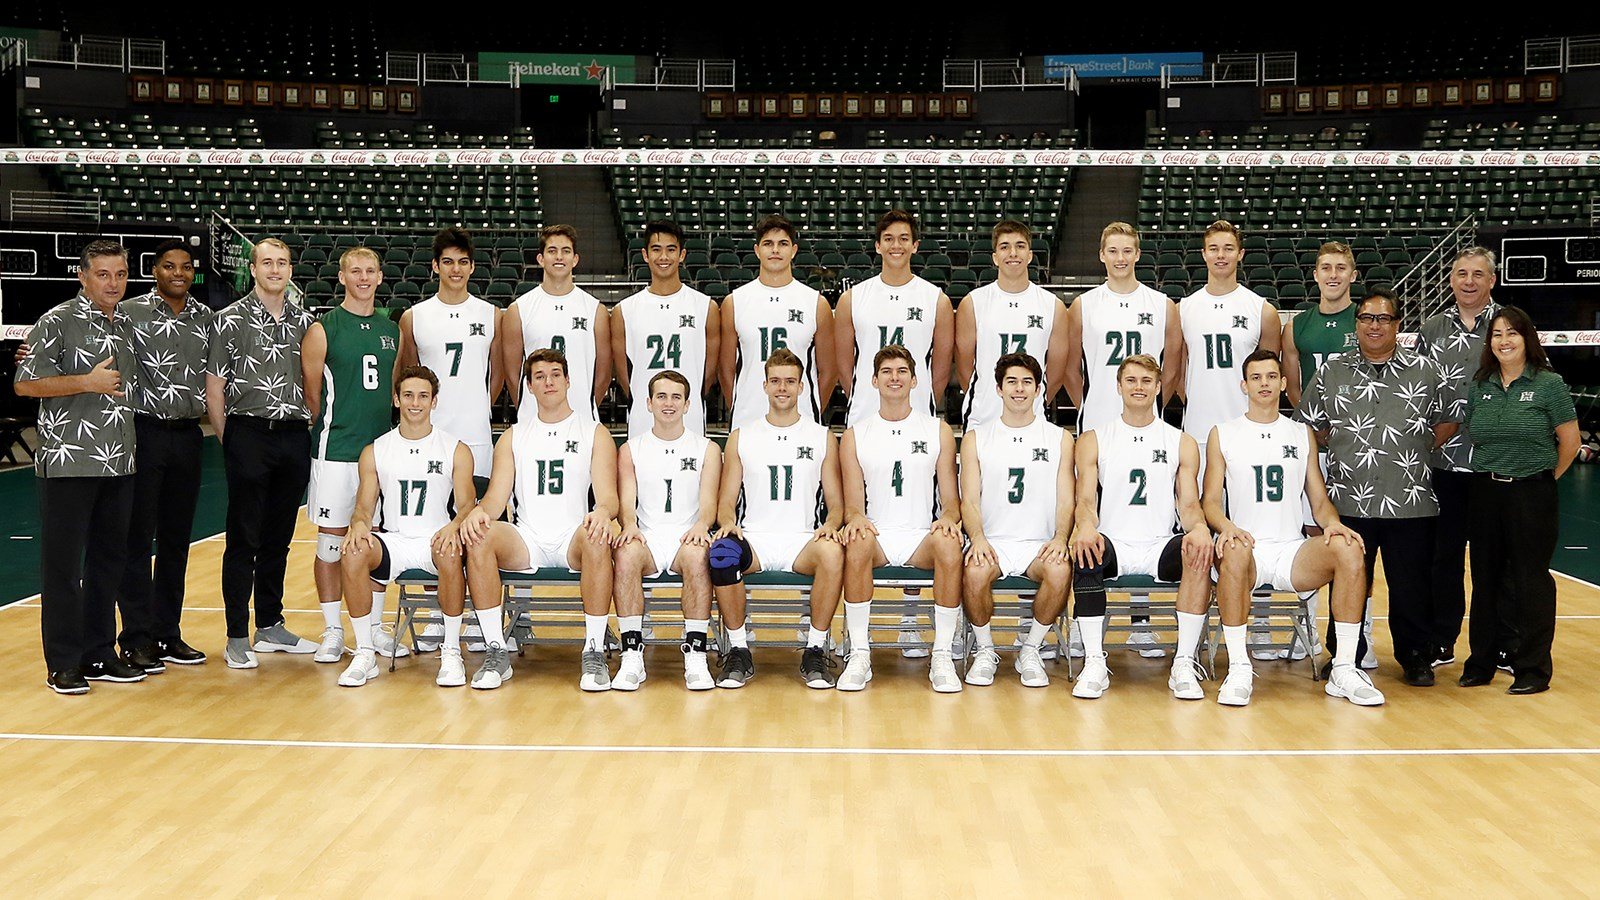 2019 Men S Volleyball Roster University Of Hawai I At Manoa Athletics